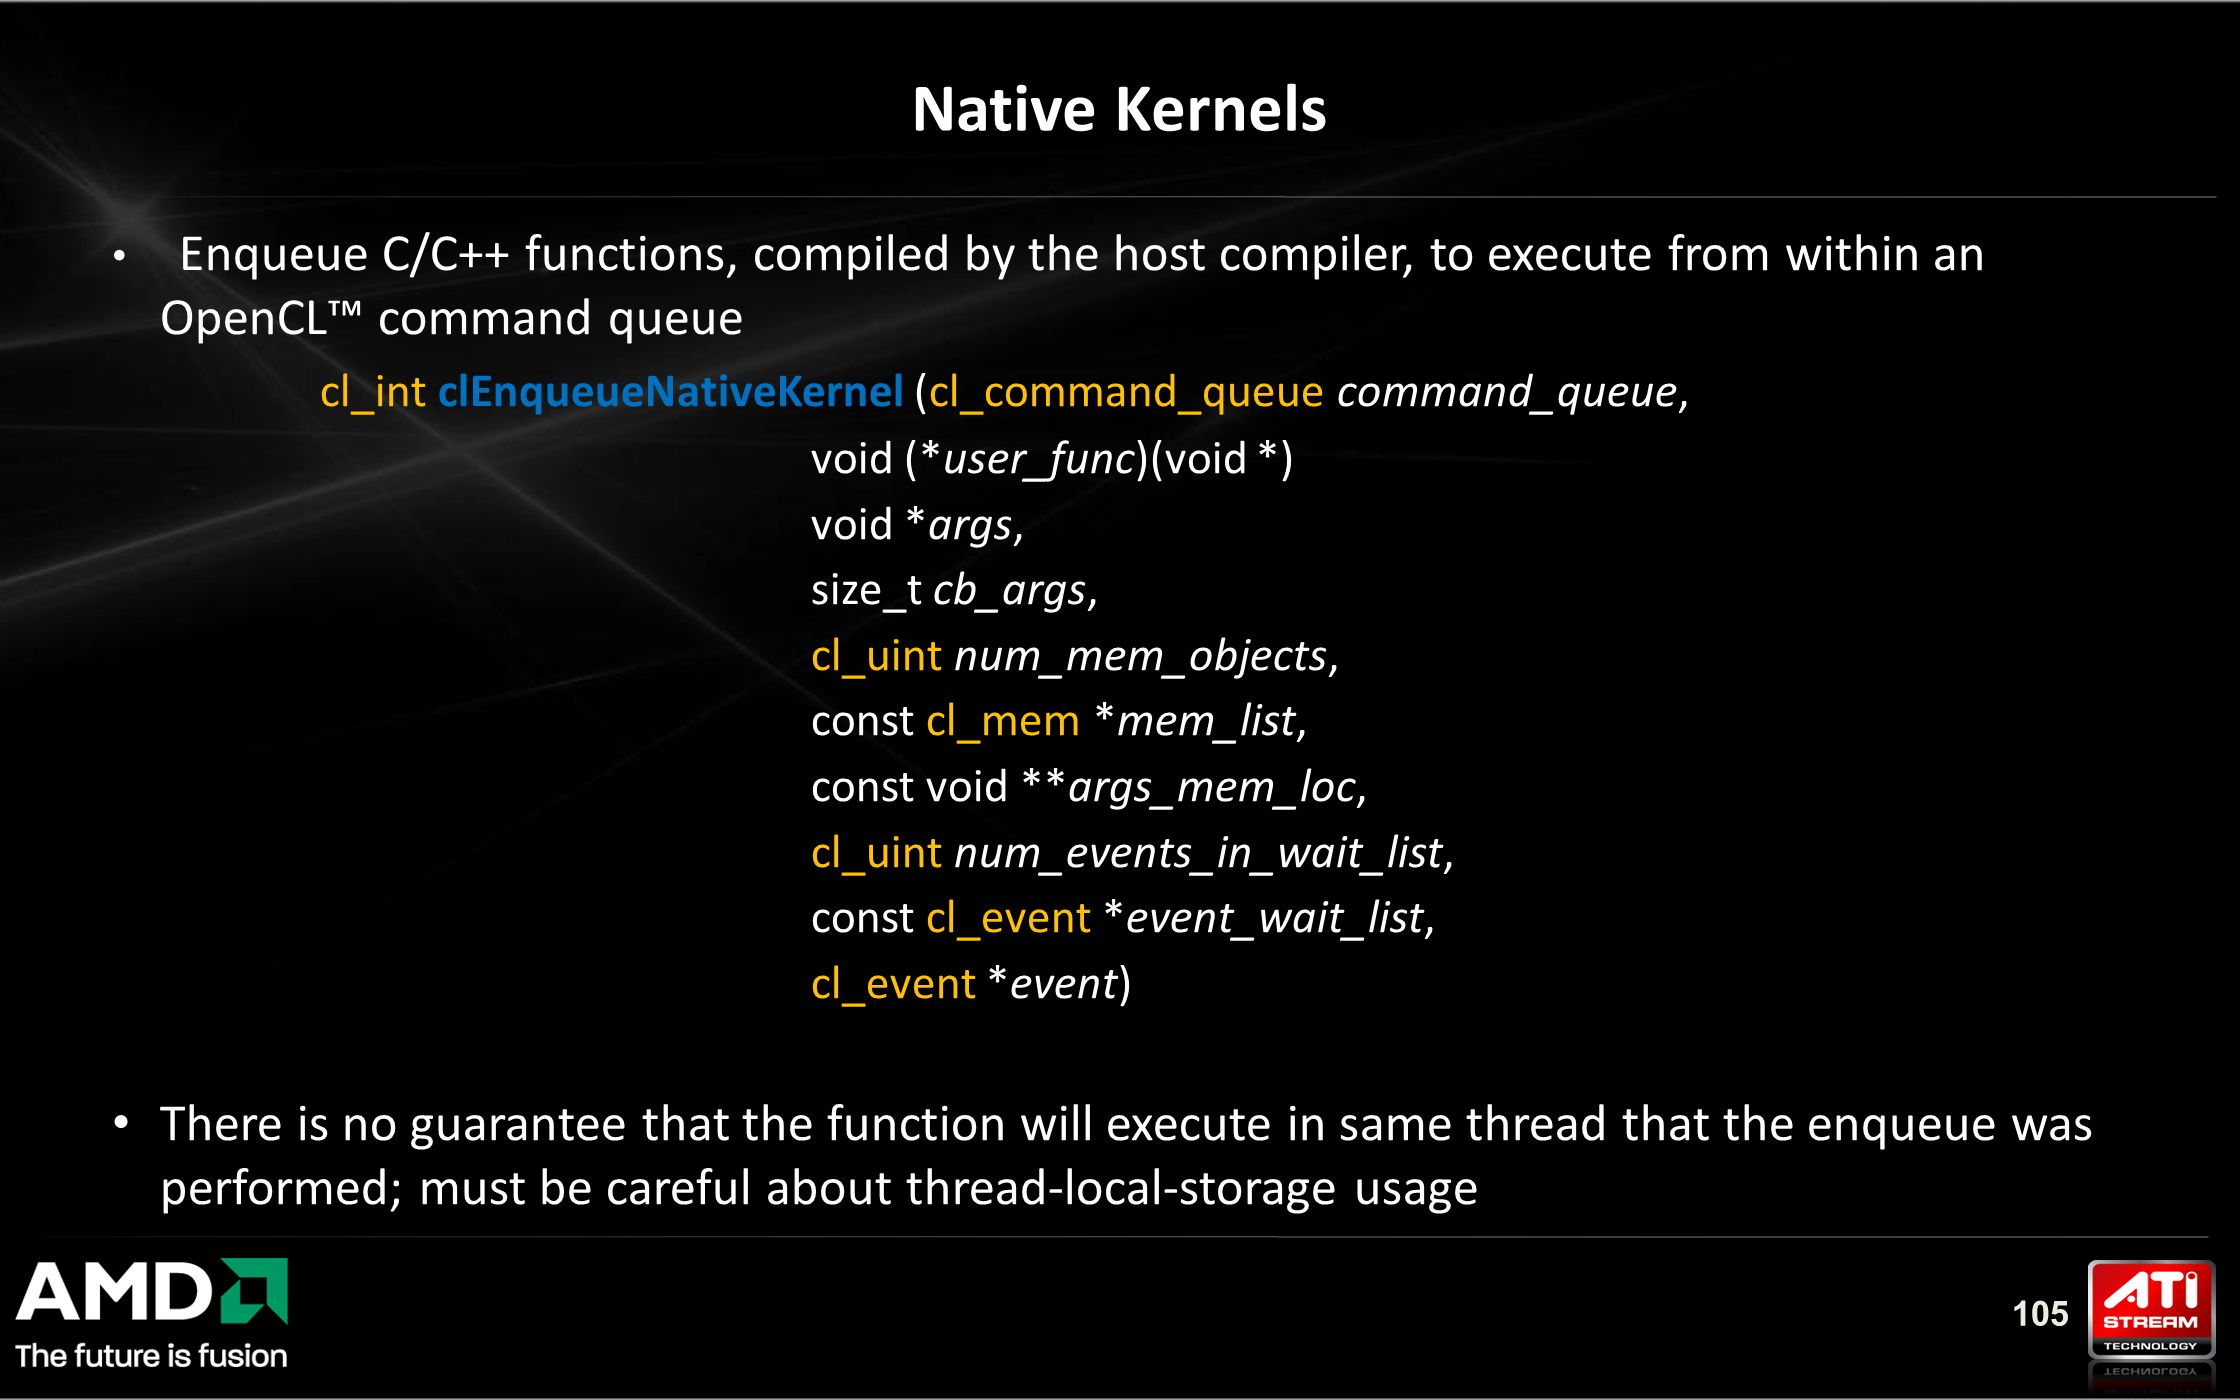 105 Native Kernels Enqueue C/C++ functions, compiled by the host compiler, to execute from within an OpenCL™ command queue cl_int clEnqueueNativeKernel (cl_command_queue command_queue, void (*user_func)(void *) void *args, size_t cb_args, cl_uint num_mem_objects, const cl_mem *mem_list, const void **args_mem_loc, cl_uint num_events_in_wait_list, const cl_event *event_wait_list, cl_event *event) There is no guarantee that the function will execute in same thread that the enqueue was performed; must be careful about thread-local-storage usage